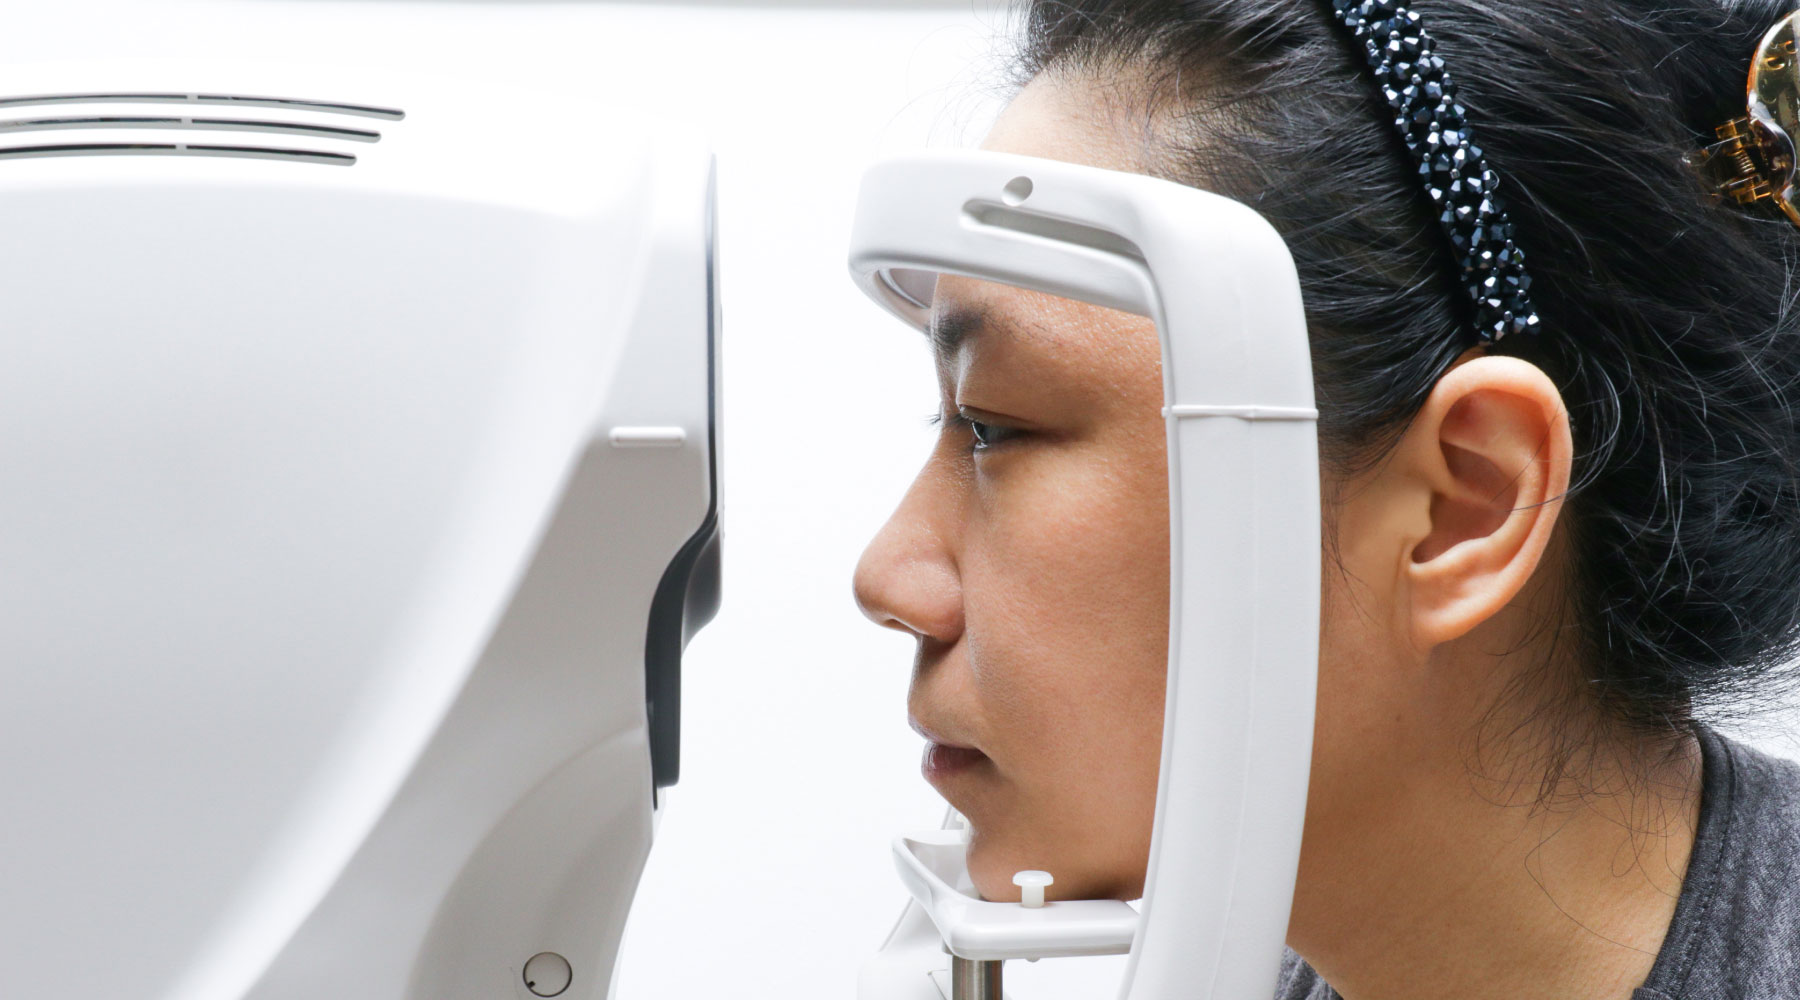 An individual has their eye scanned in a machine